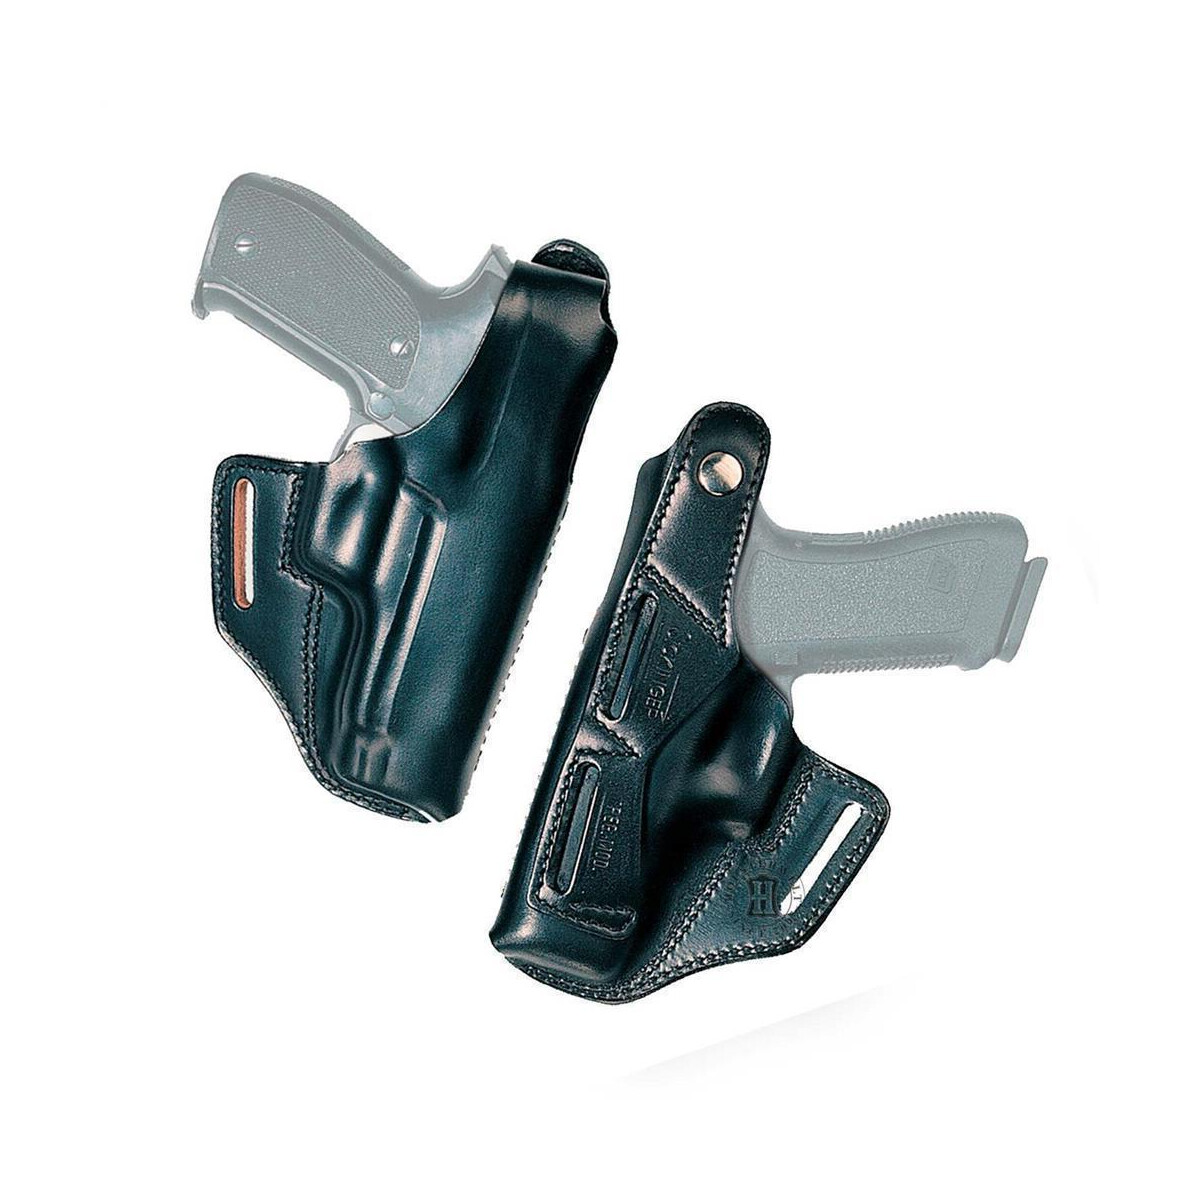 Sickinger holster BELT MASTER Left Brown Walther P99 / PPQ / PPQ M2